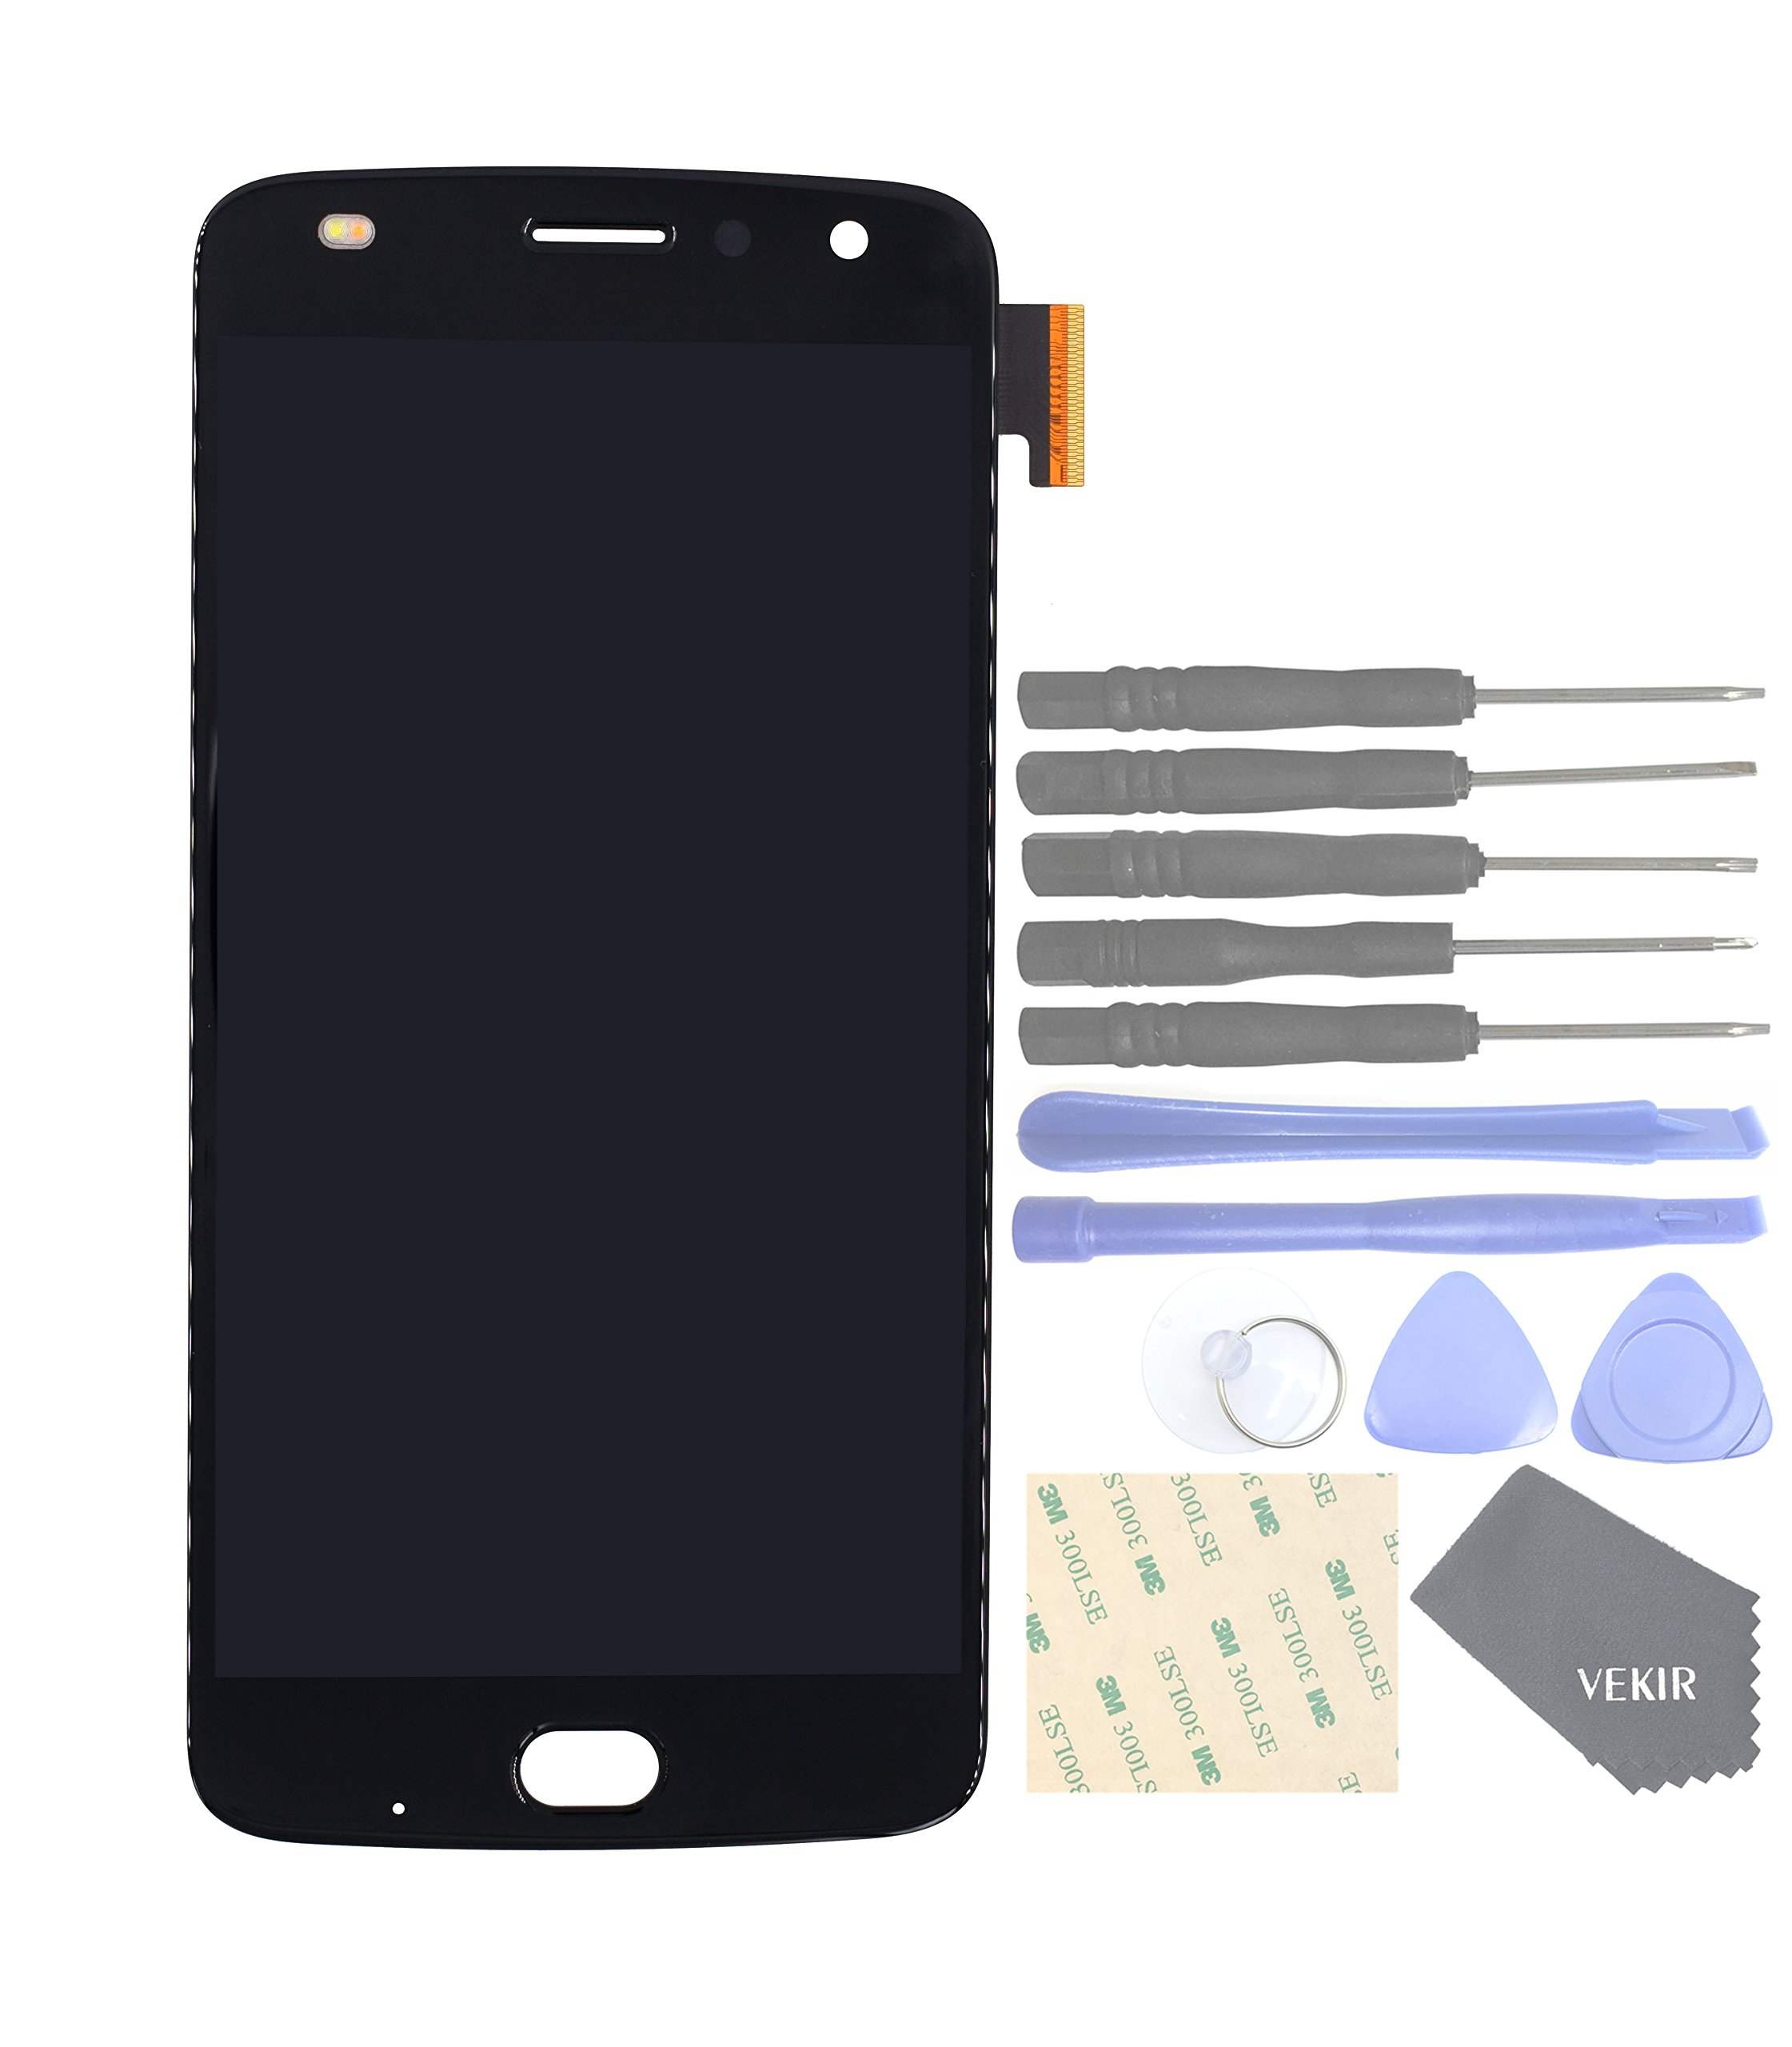 VEKIR Touch Display Digitizer Screen Replacement for Motorola Moto Z2 Play XT1710-01 XT1710-07 XT1710-10 XT1710-08(Black)